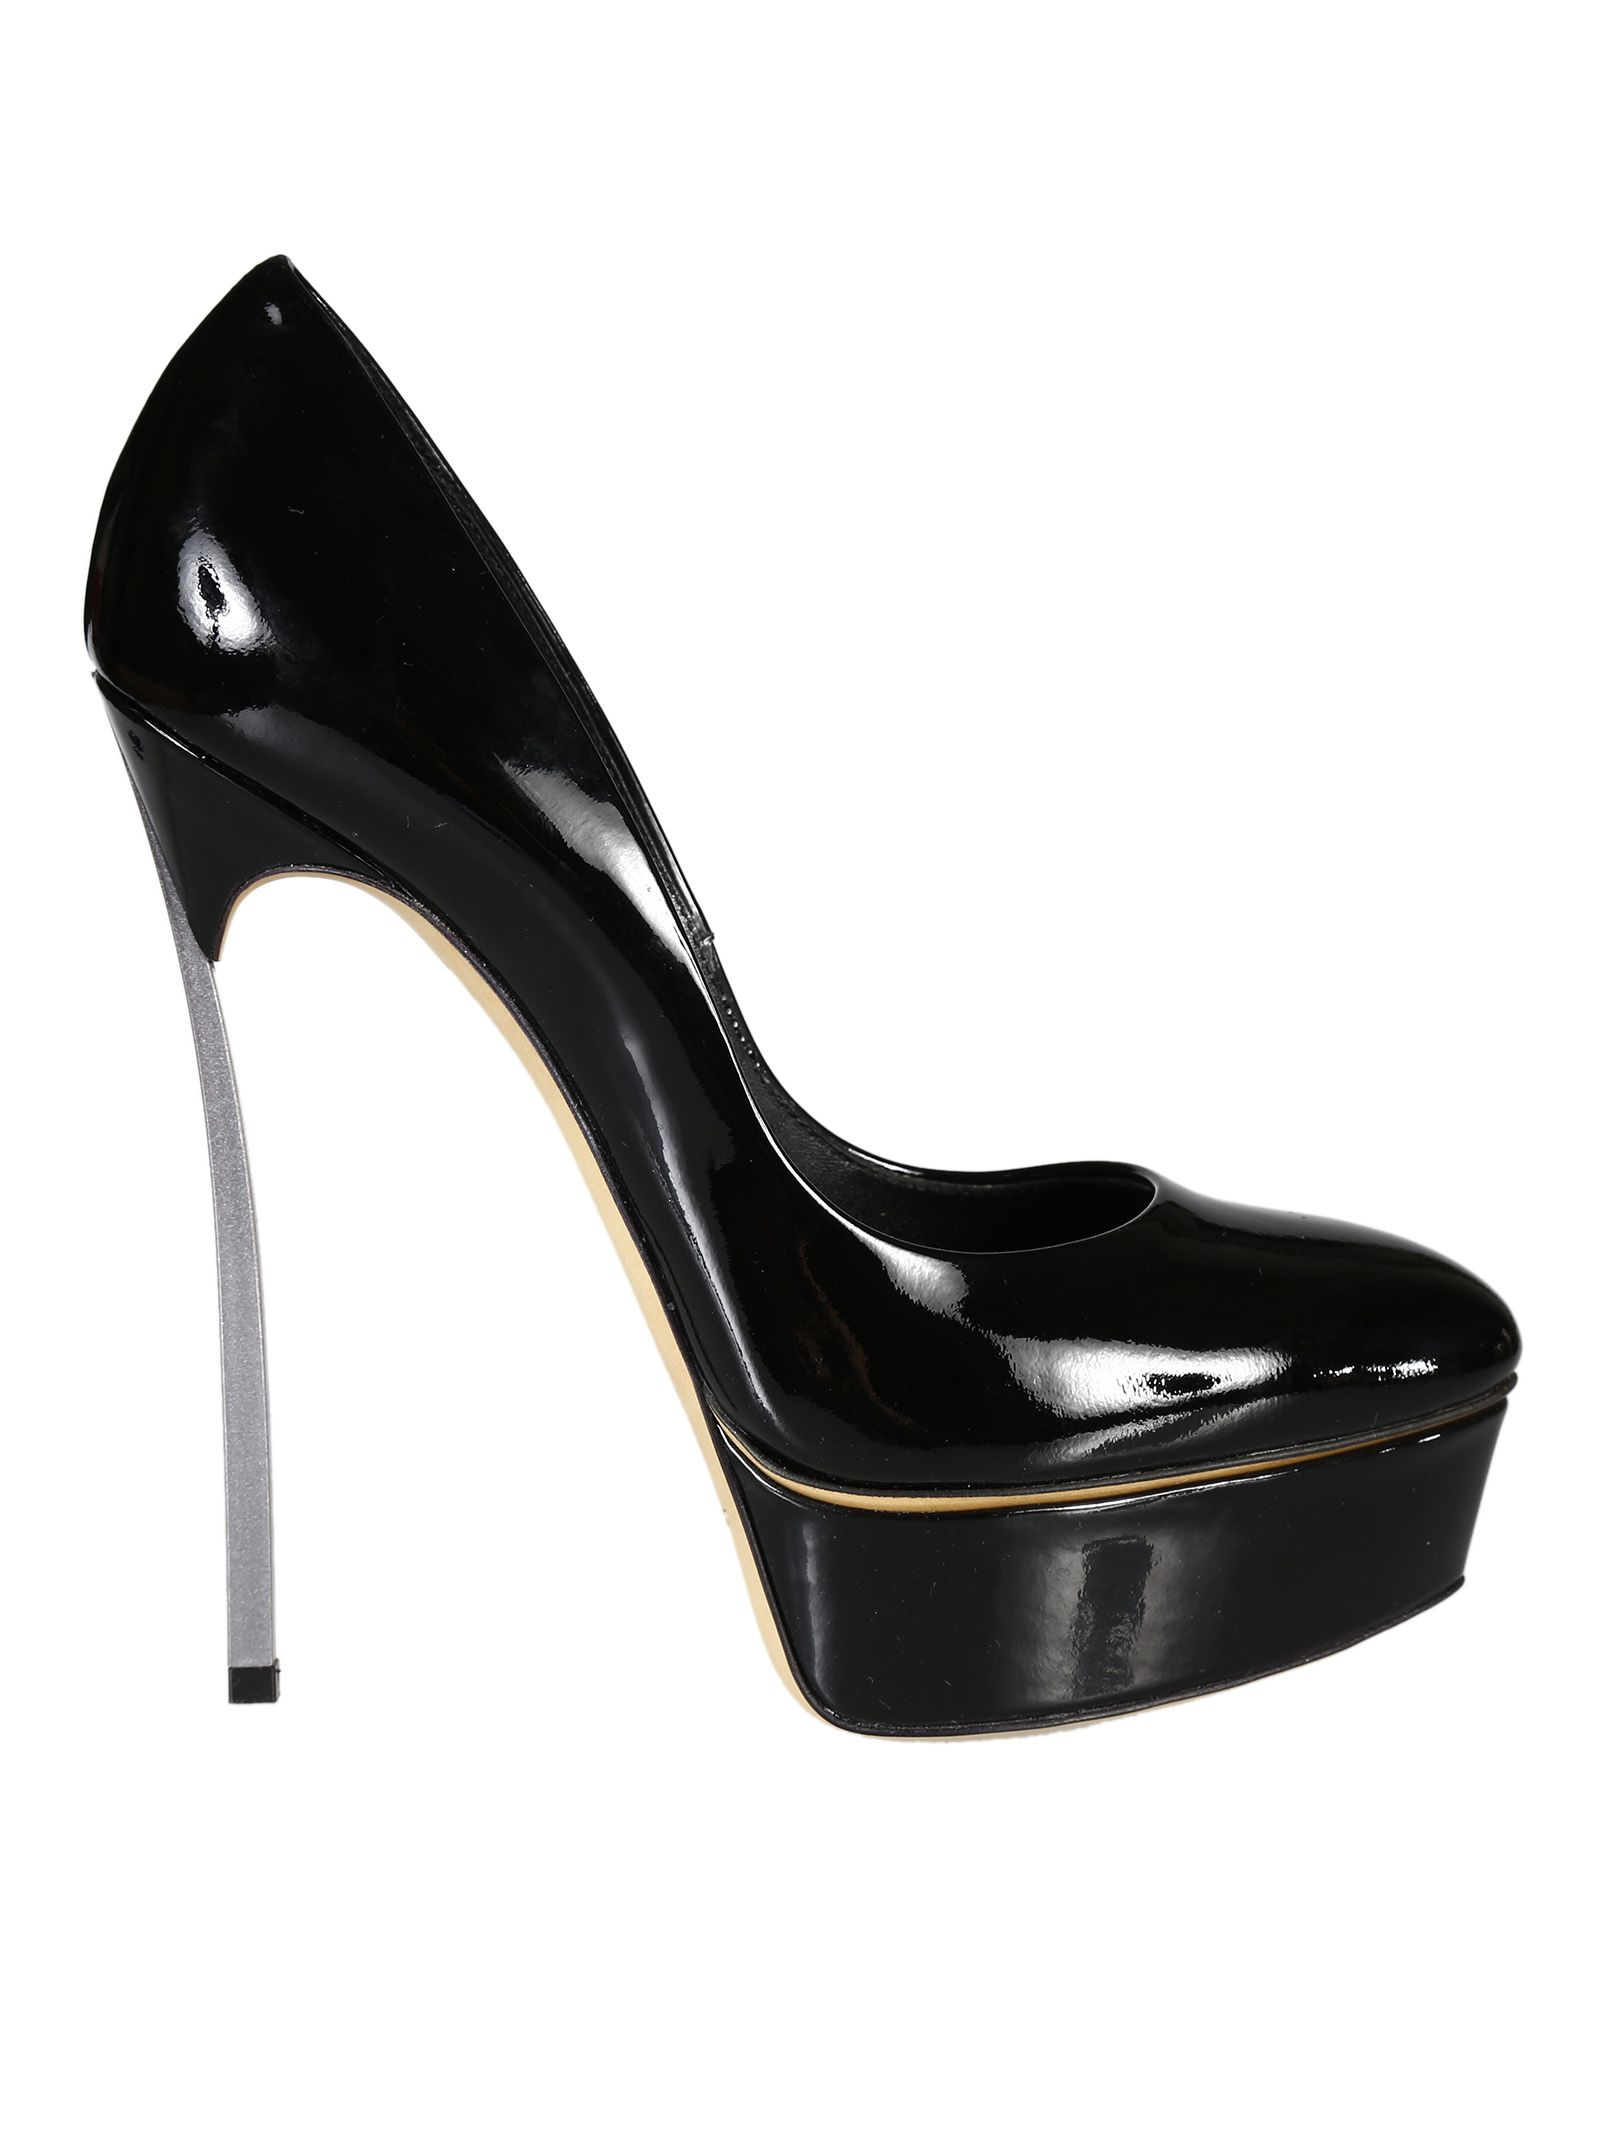 Pumps & High Heels for Women On Sale, Black, Leather, 2017, 3 Casadei